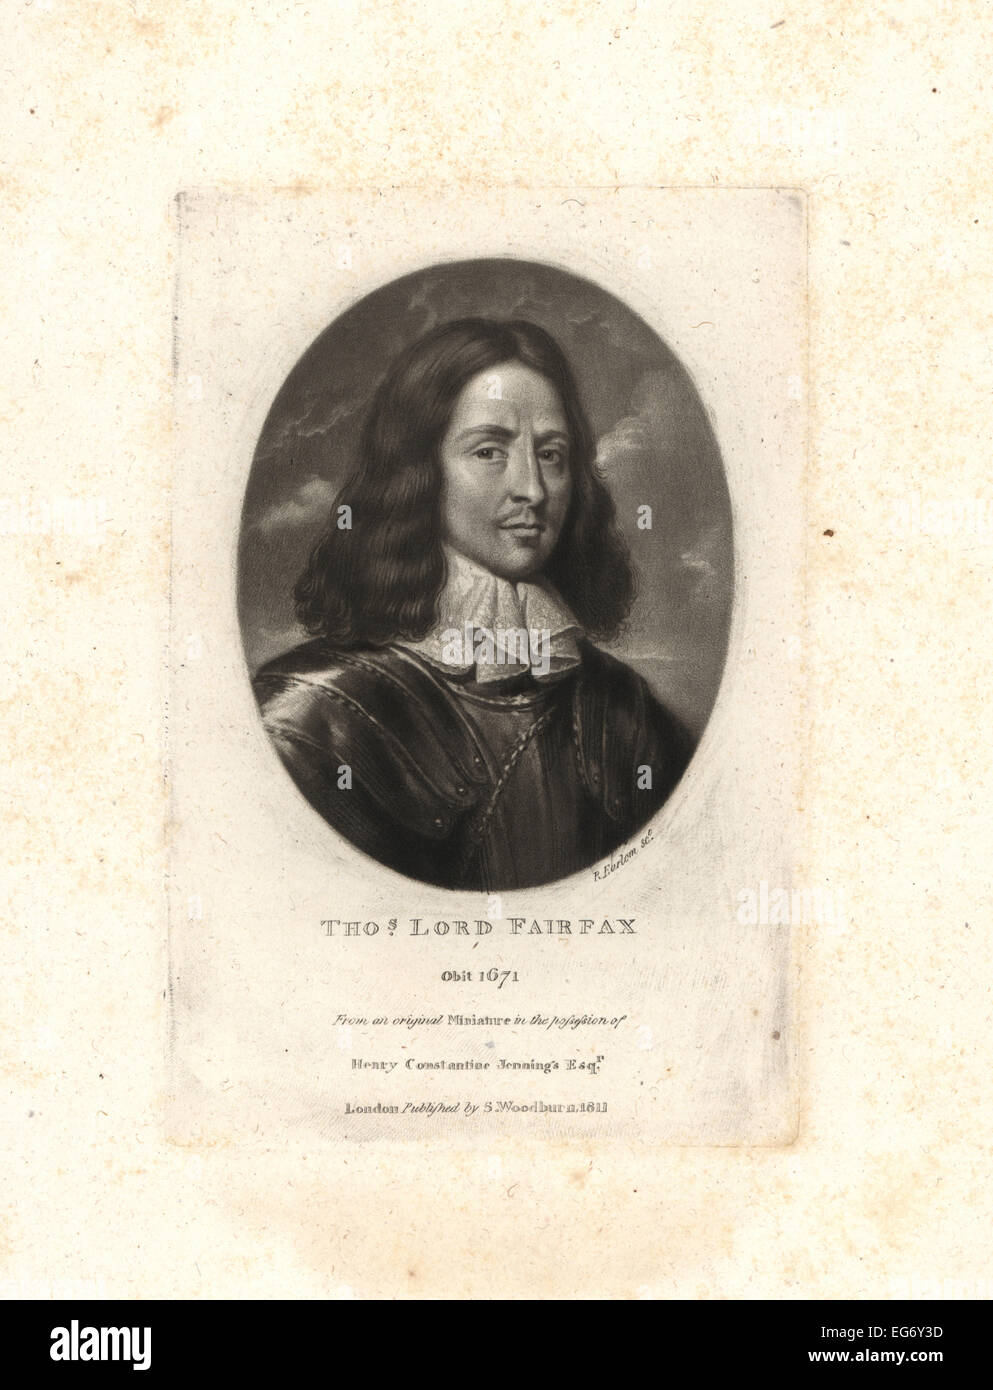 Thomas Fairfax, 3rd Lord Fairfax of Cameron, Parliamentary general in the English Civil War, died 1671. - Stock Image